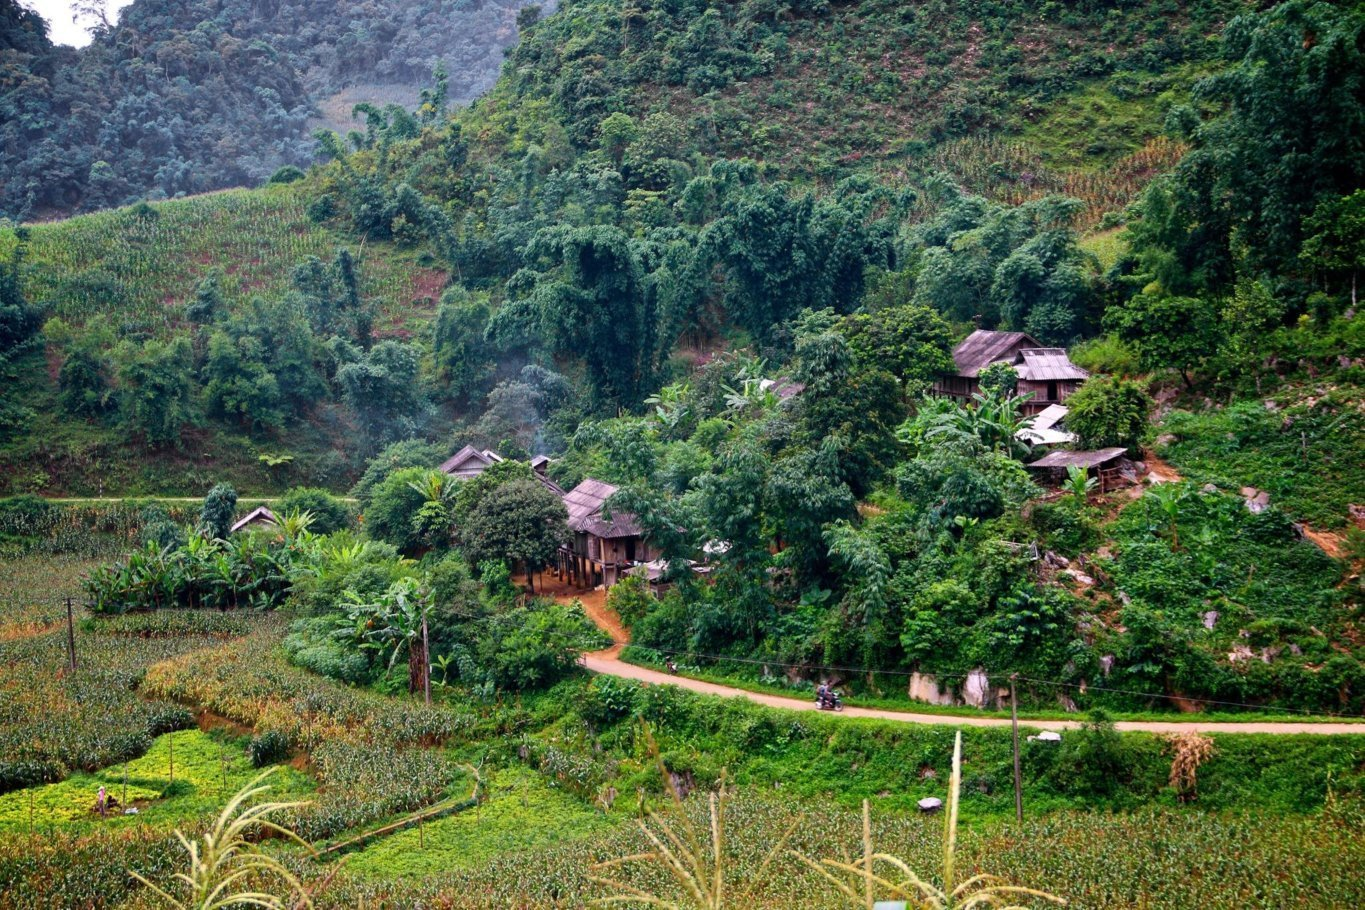 2-Day Pu Bin Spice Hill Farm Stay - Vietnam Itinerary